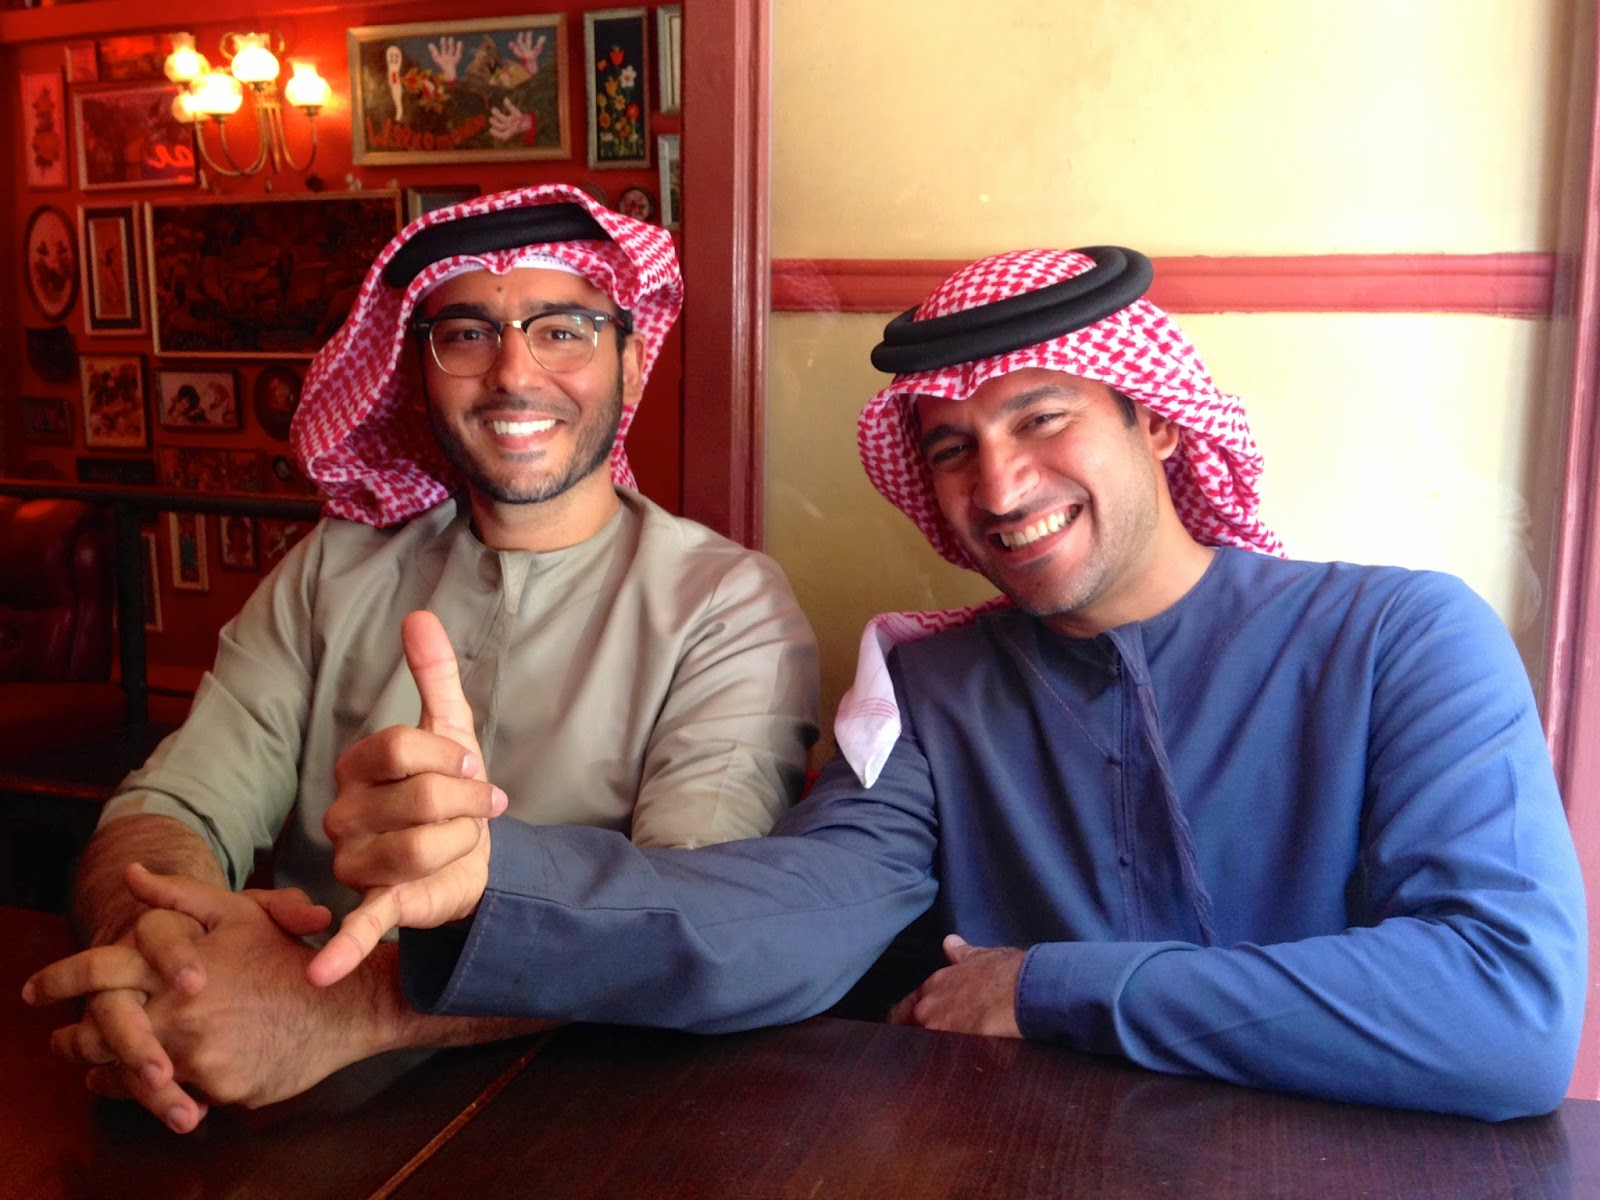 Mohamed and Peyman Parham Al Awadhi